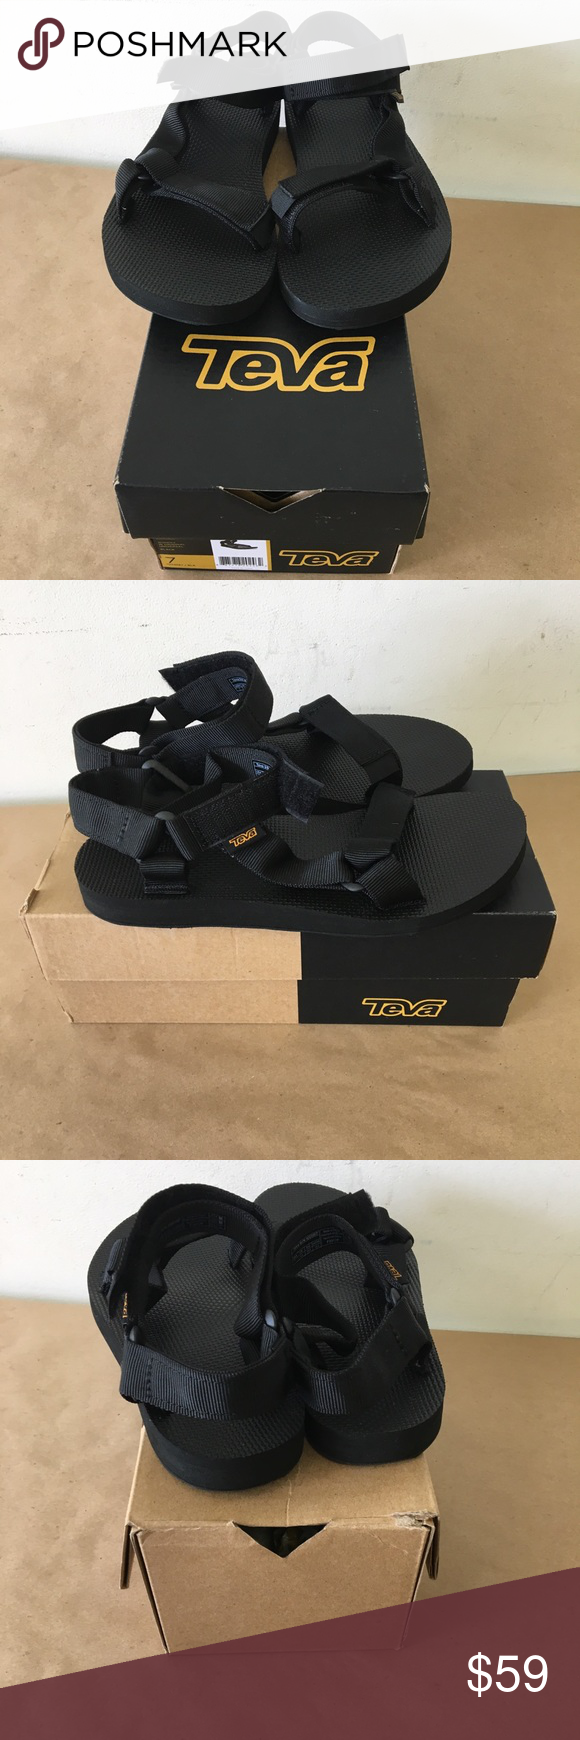 158c1e037f23 TEVA Women s Size 7 Black Sandals Original NEW NIB TEVA Women s Size 7 Black  Sandals Original